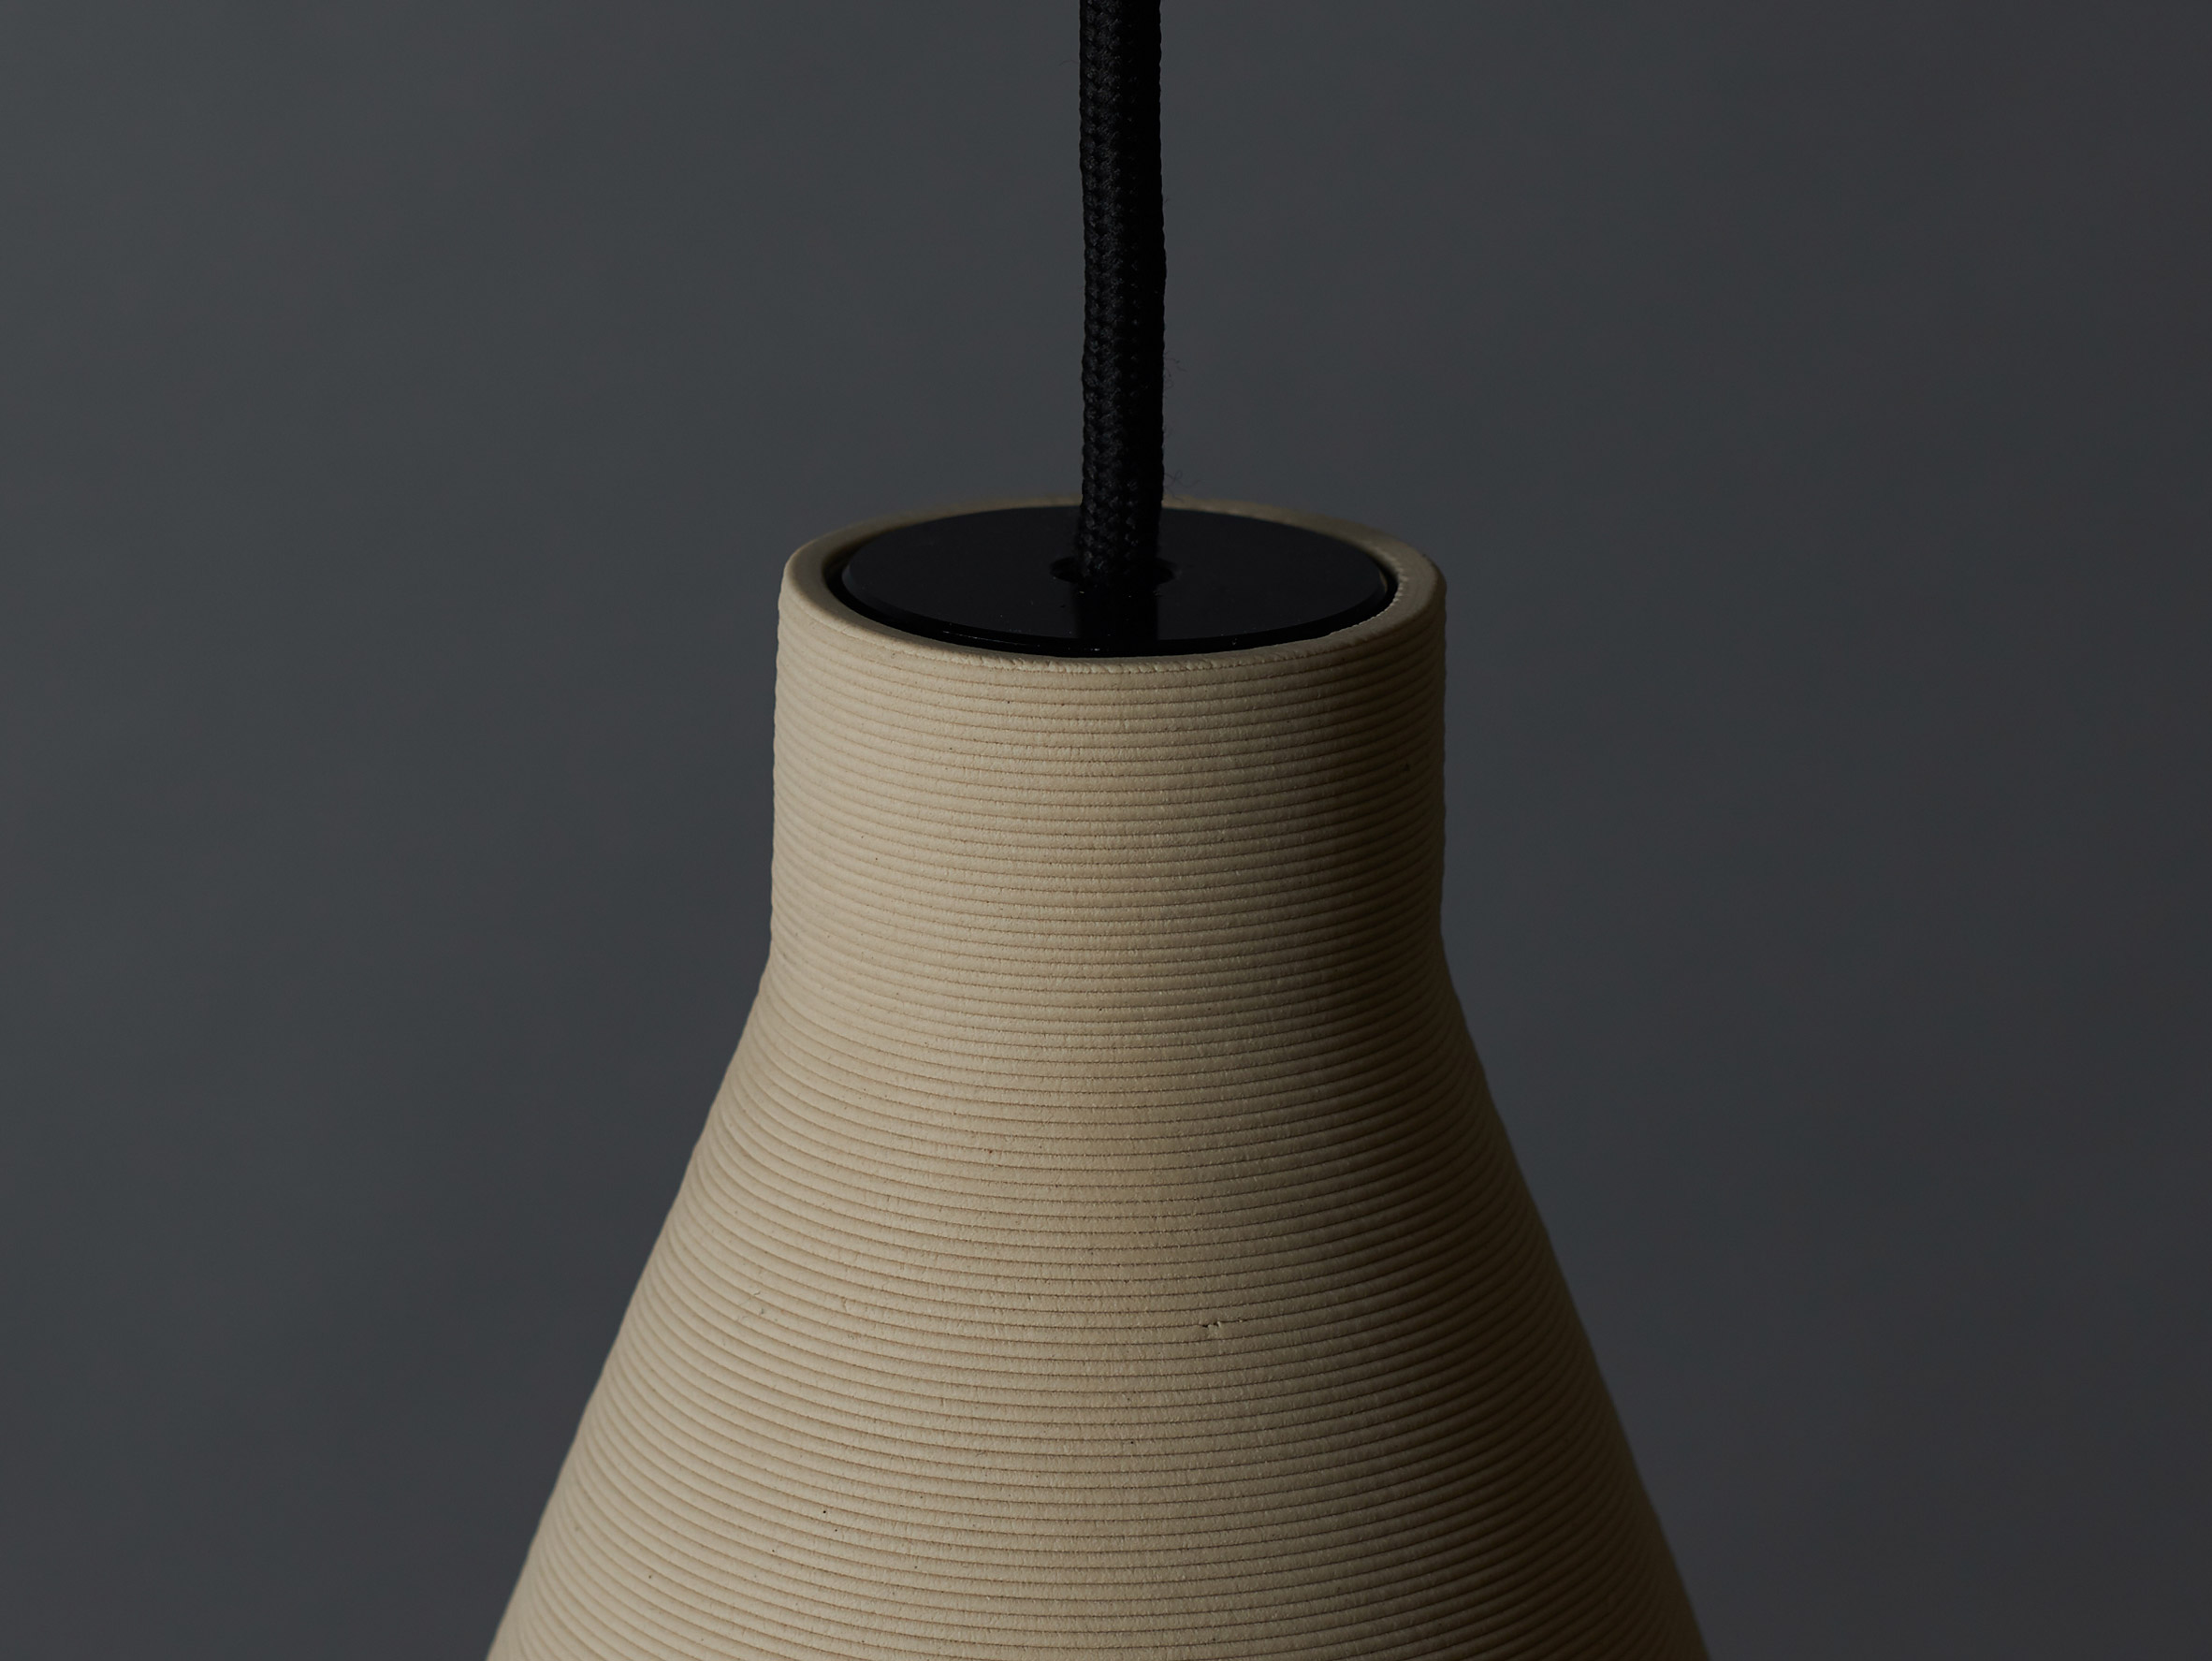 Tom Fereday's Pelo light is made from a single coil of extruded ceramic